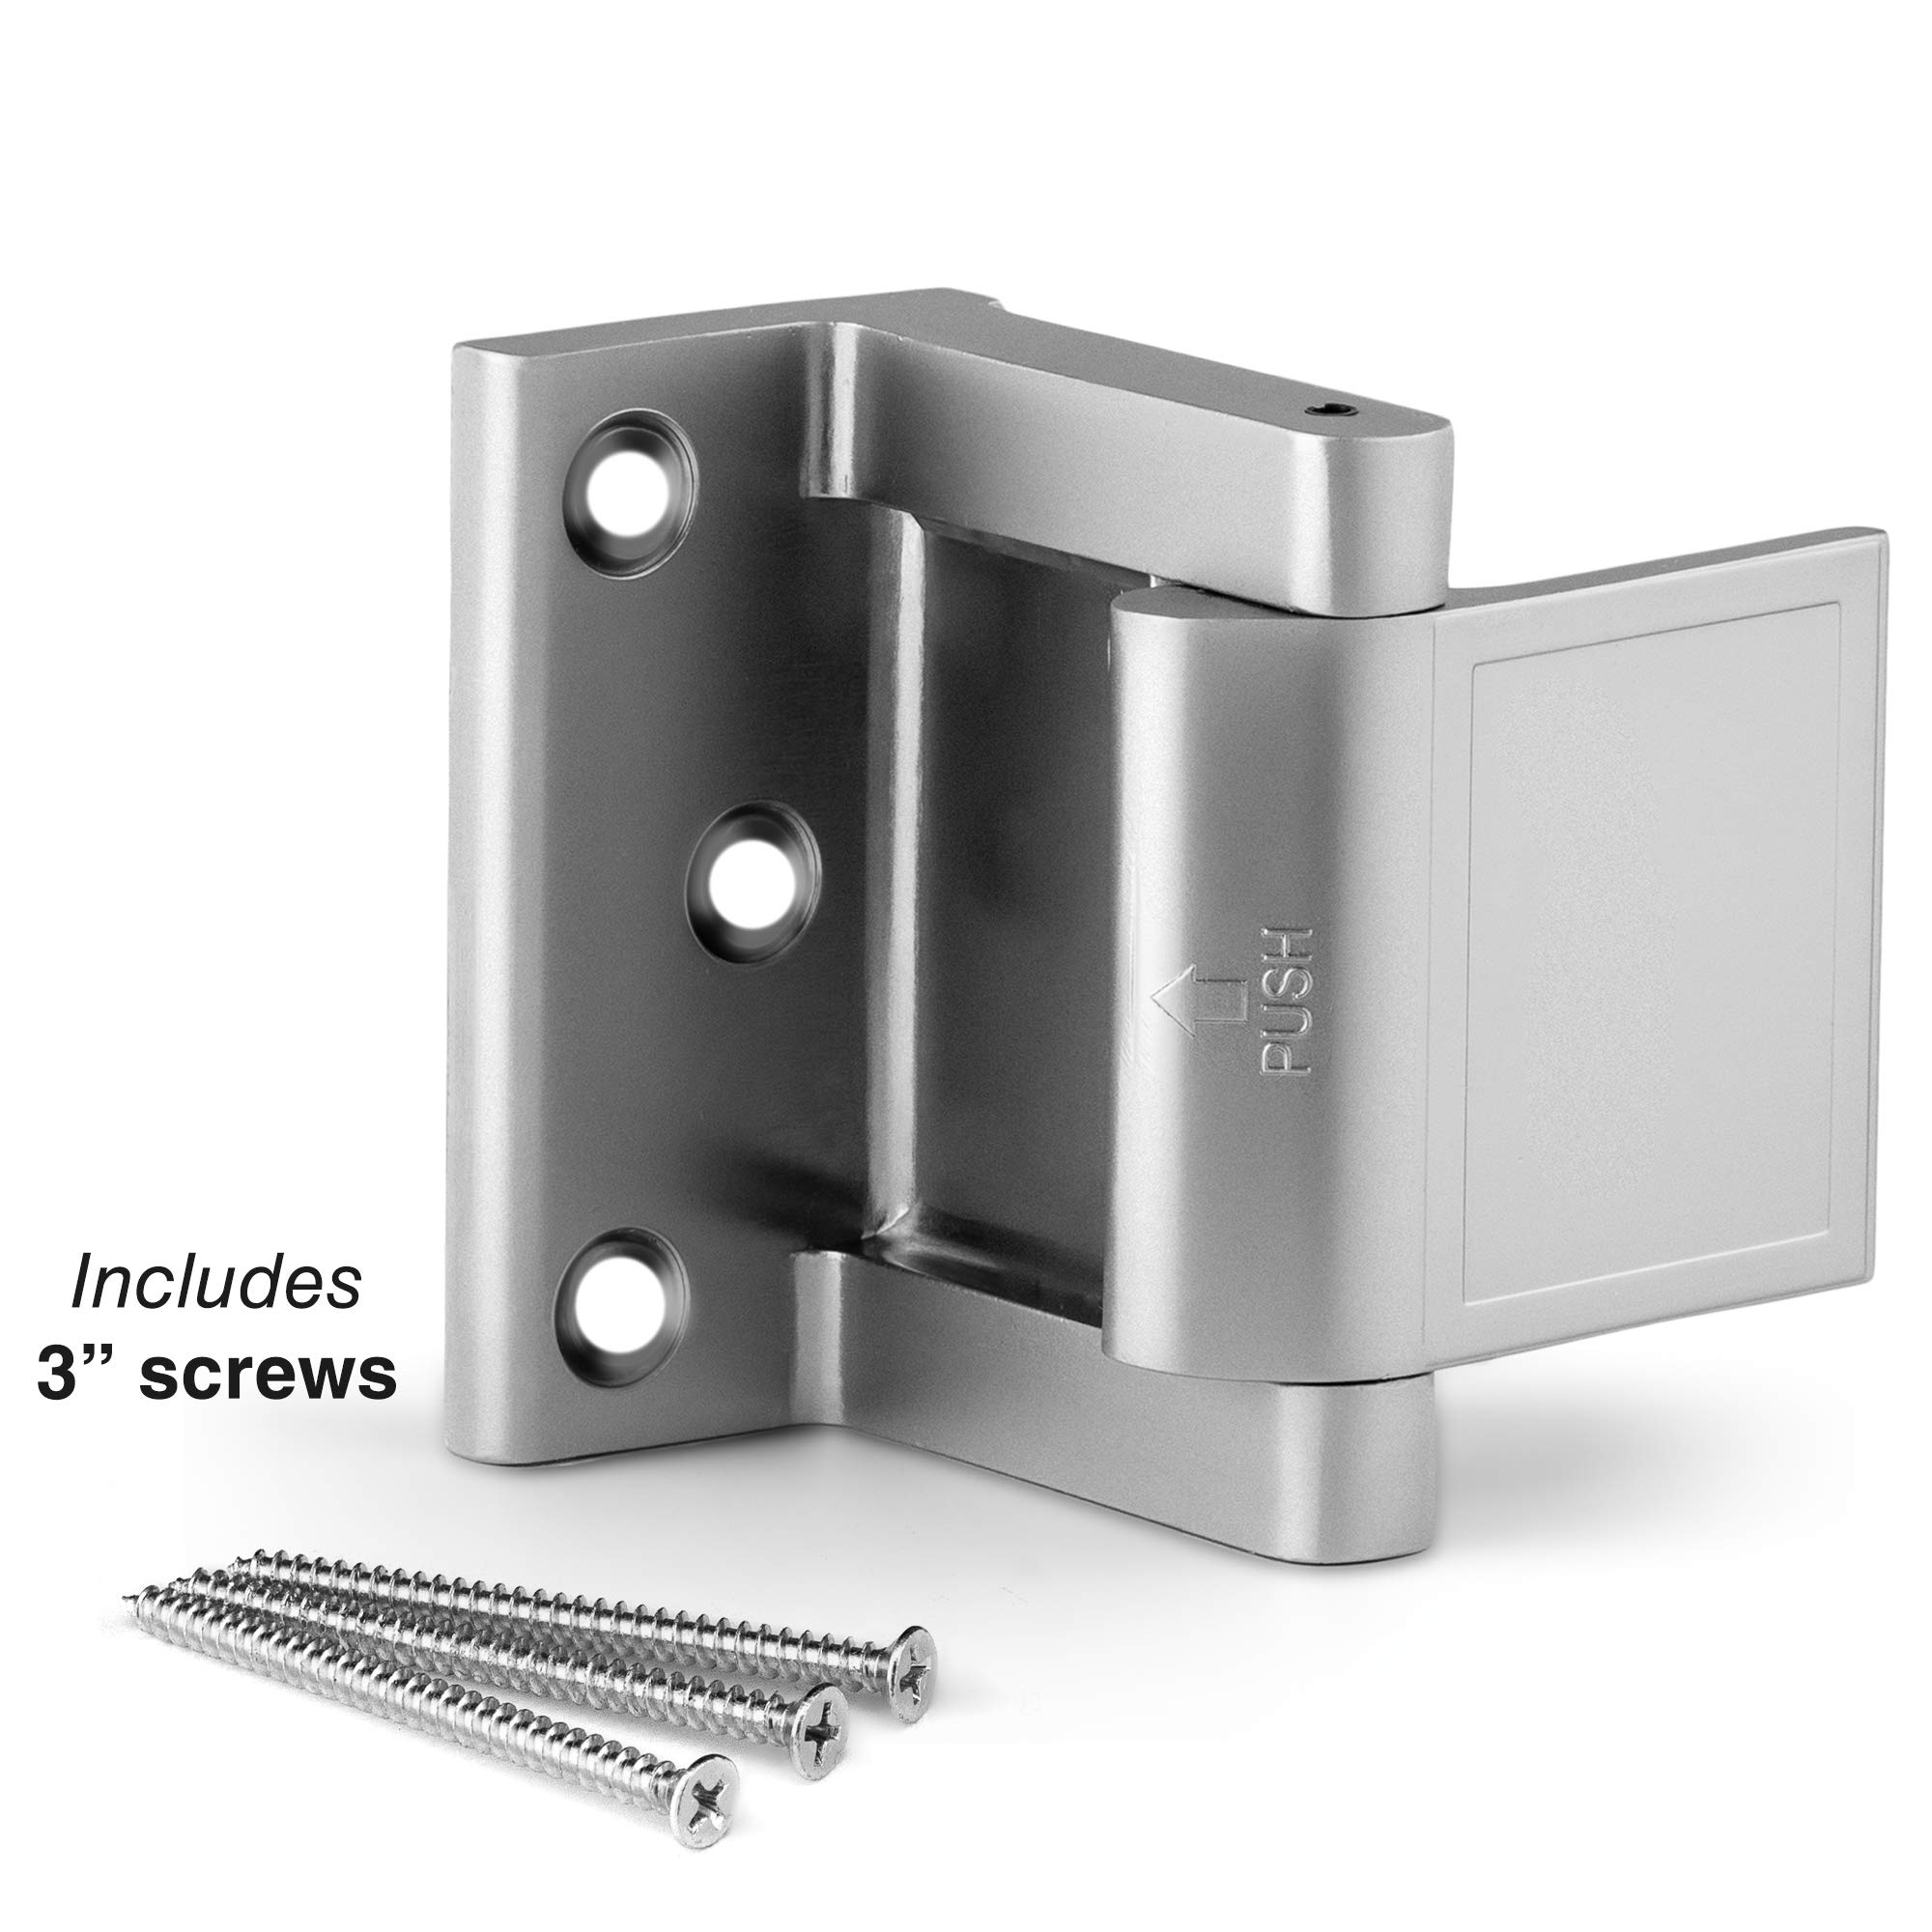 Berlin Modisch Door Lock Reinforcer Privacy Door Latch for in-Swinging Doors Extra High Resistance Home Door Security Lock Brushed Nickel Finish